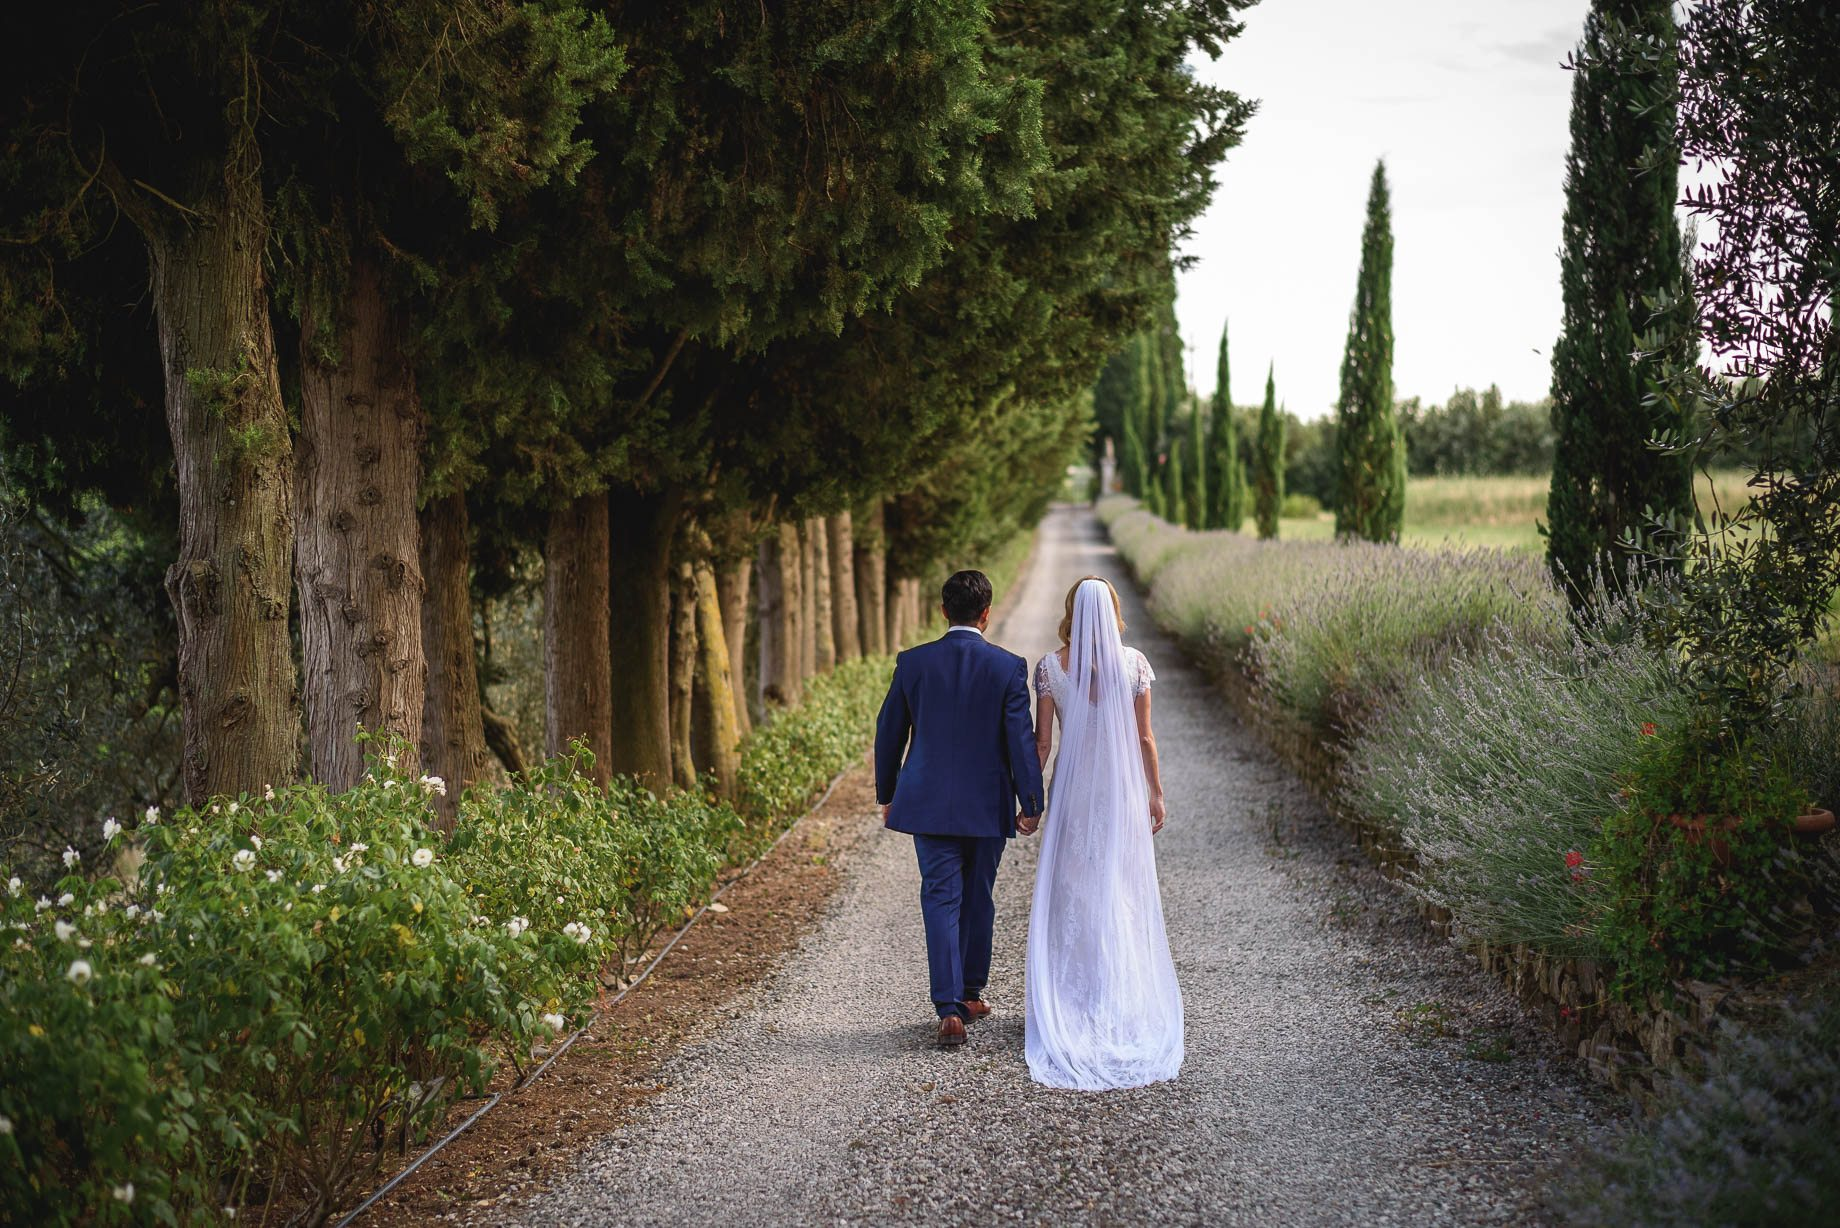 Tuscany wedding photography - Roisin and Moubin - Guy Collier Photography (143 of 251)